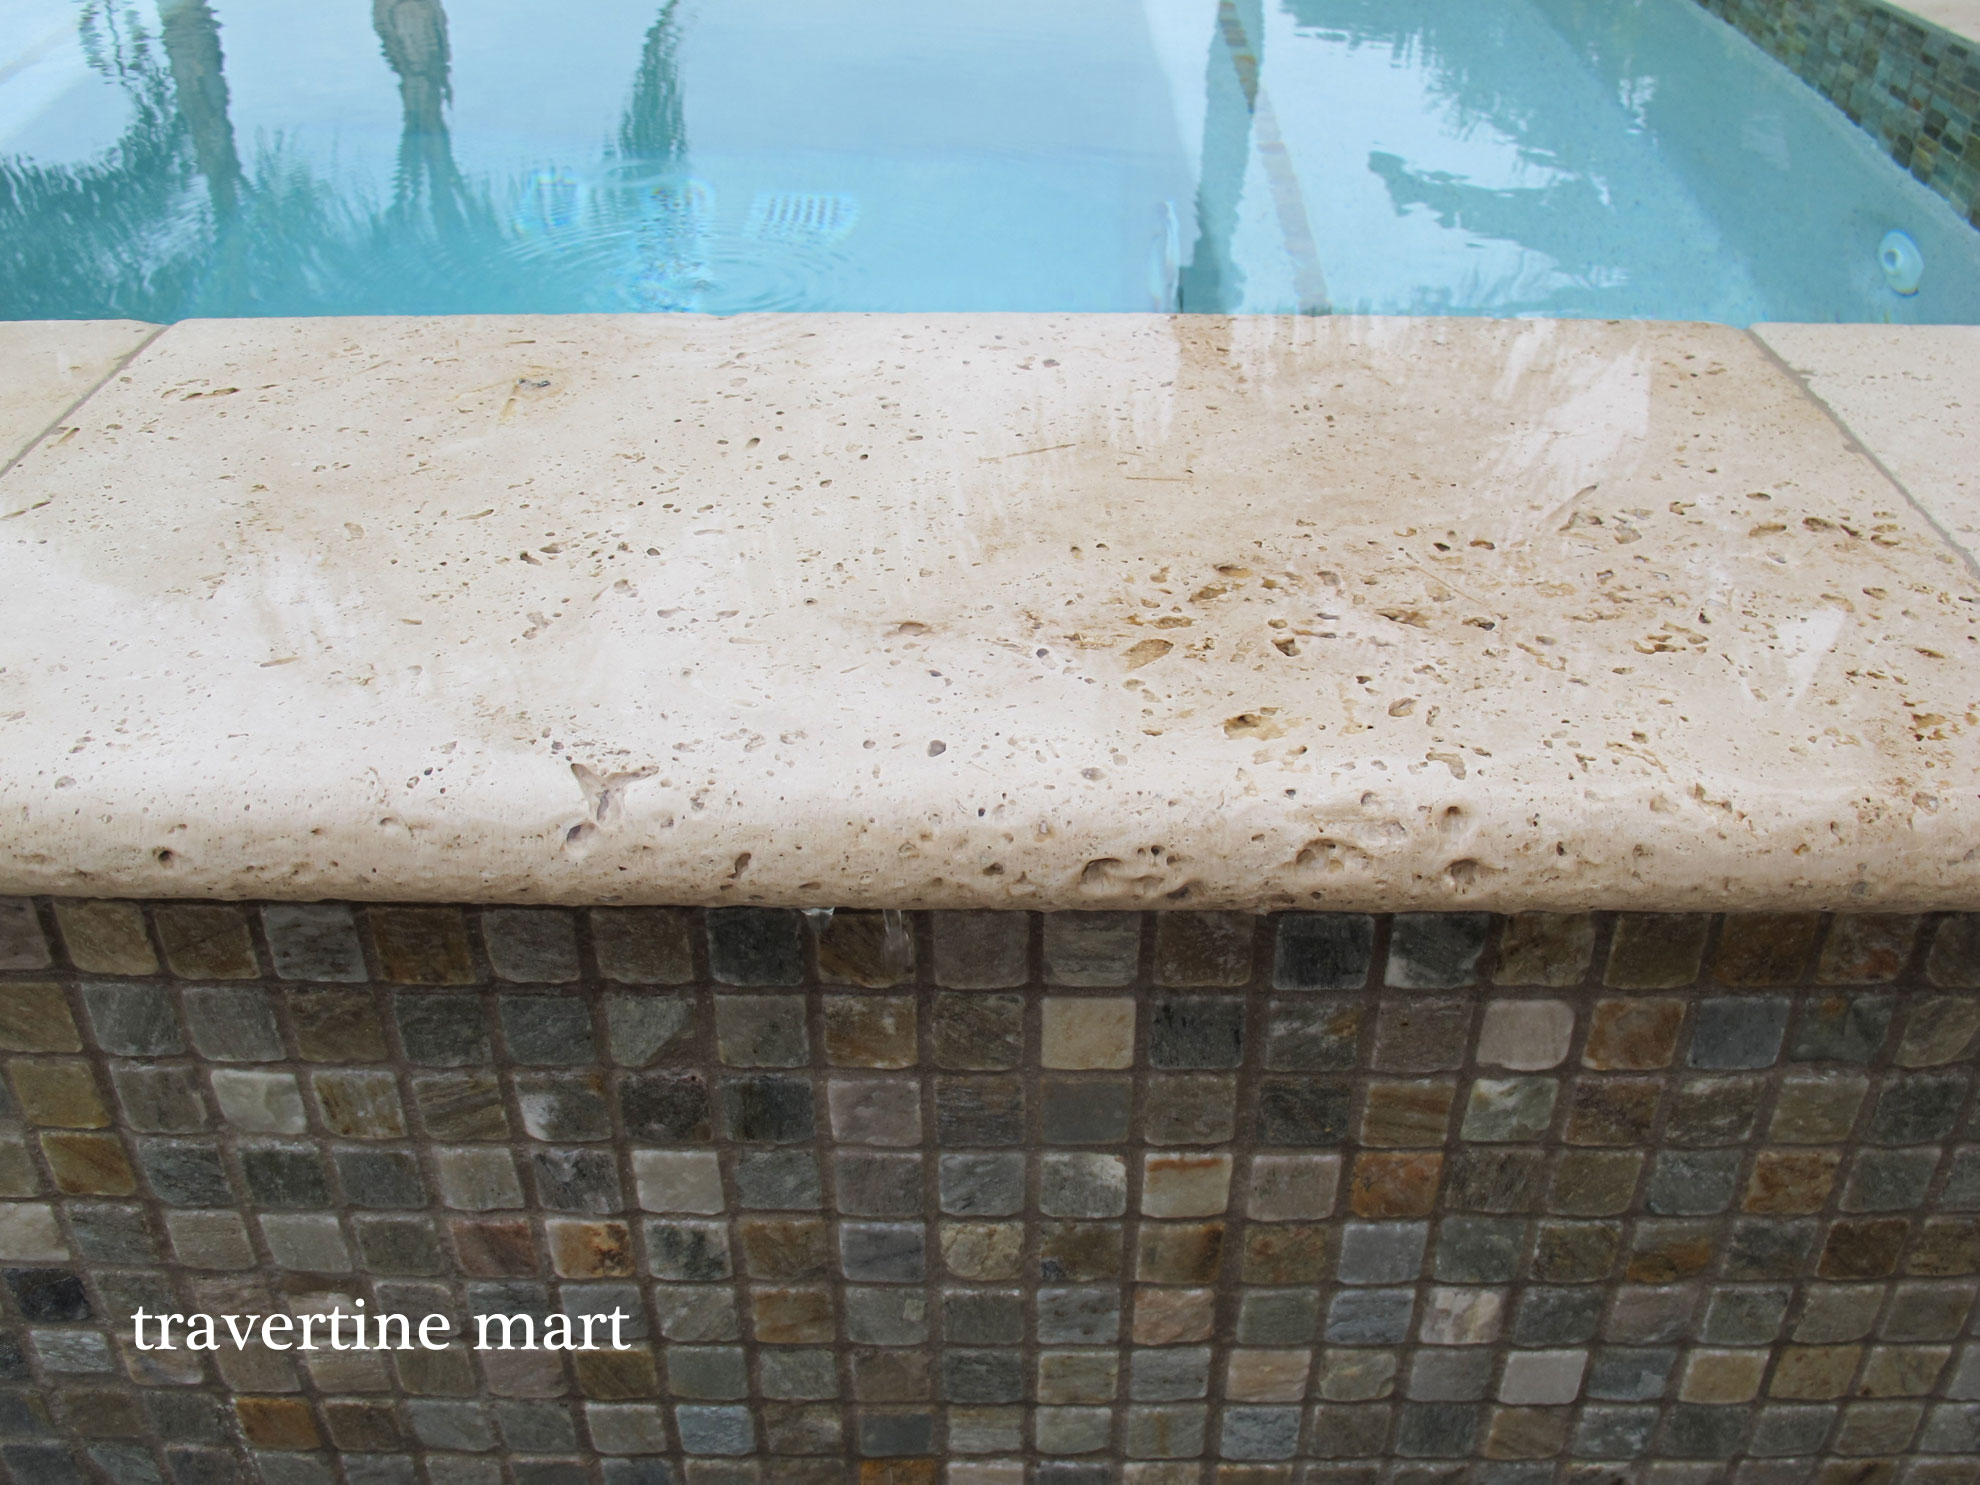 Travertine pavers and salt water erosion for Pool design regrets